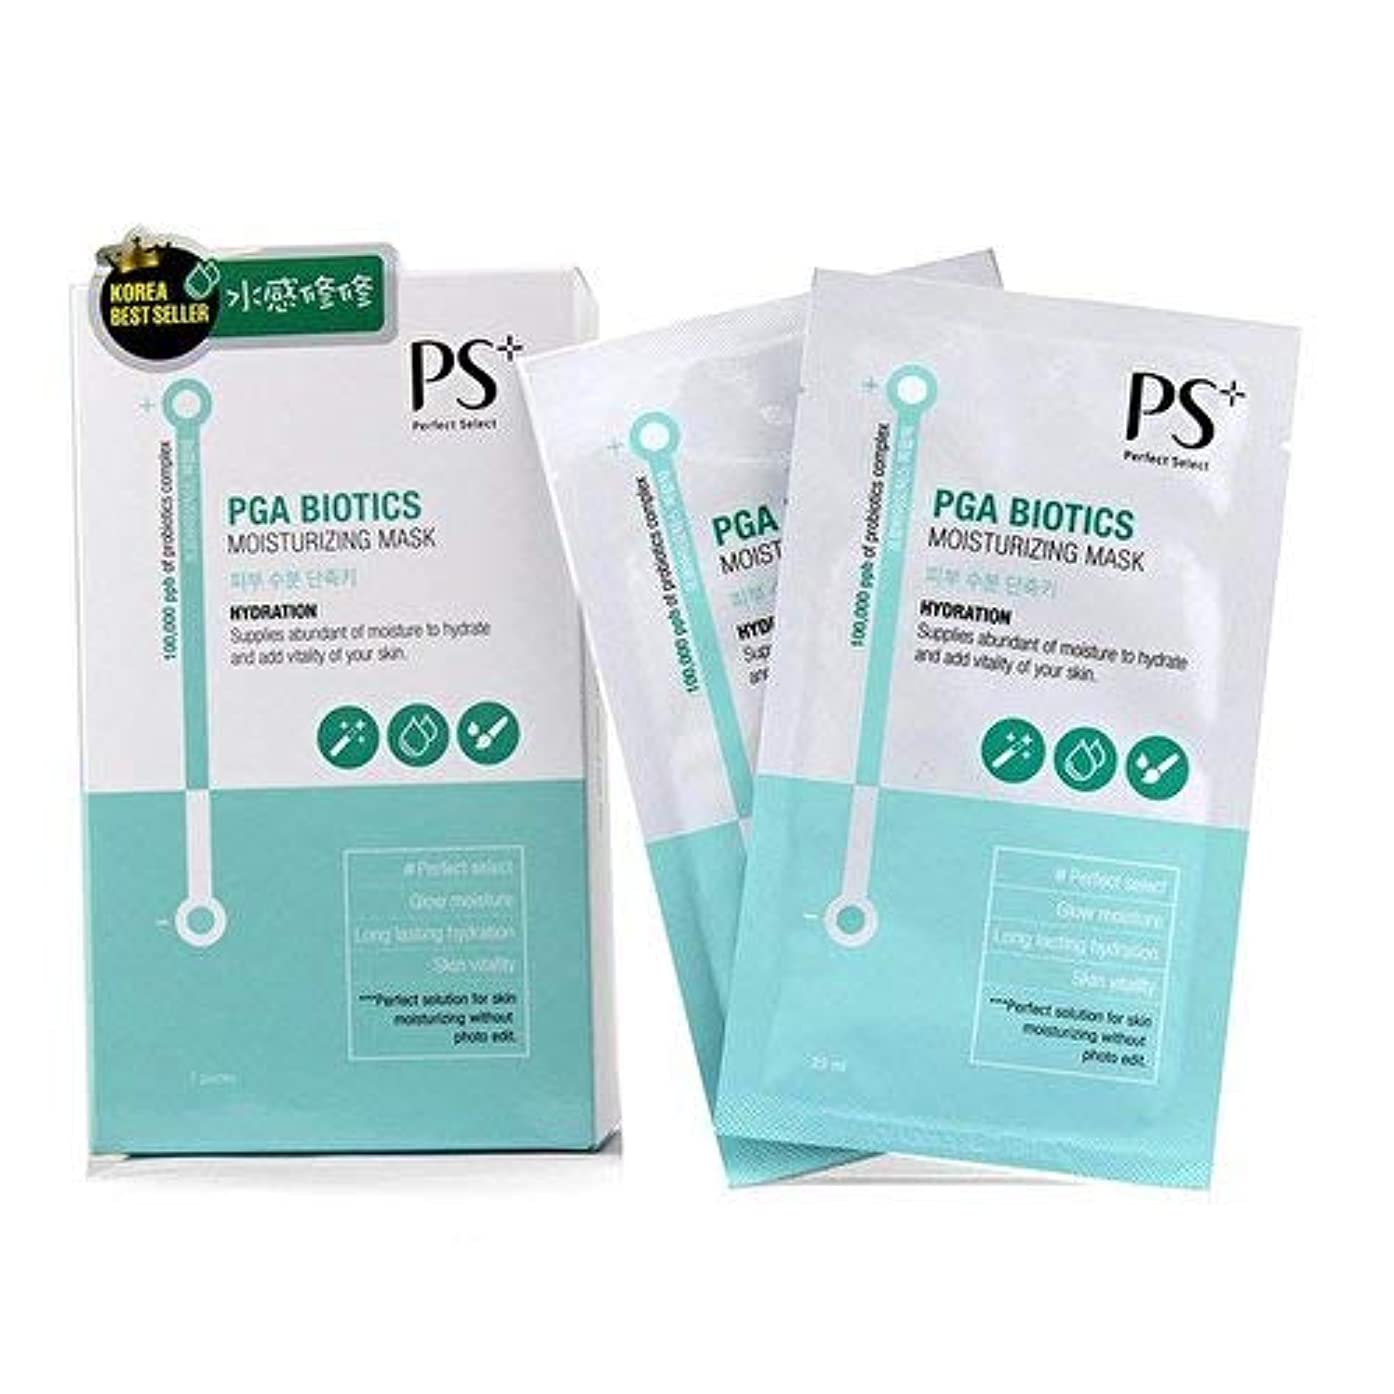 比率グラディス迷彩PS Perfect Select PGA Biotics Moisturizing Mask - Hydration 7pcs並行輸入品